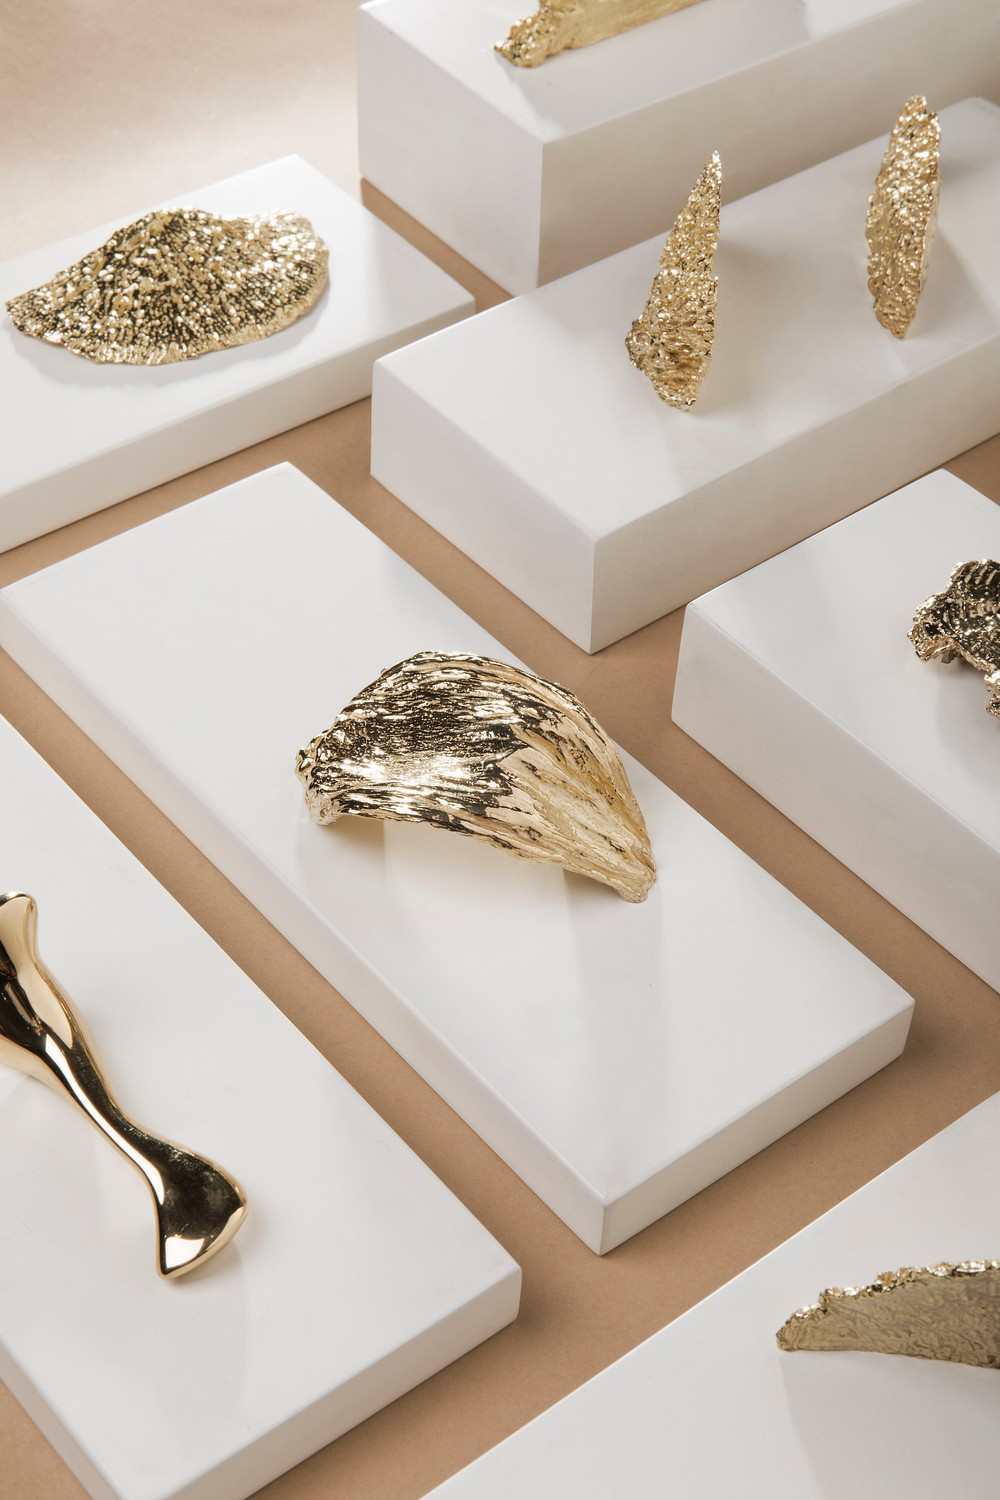 Exquisite Plants Act as Inspiration Behind These Decorative Hardware 10 decorative hardware Exquisite Plants Act as Inspiration Behind These Decorative Hardware Exquisite Plants Act as Inspiration Behind These Decorative Hardware 10